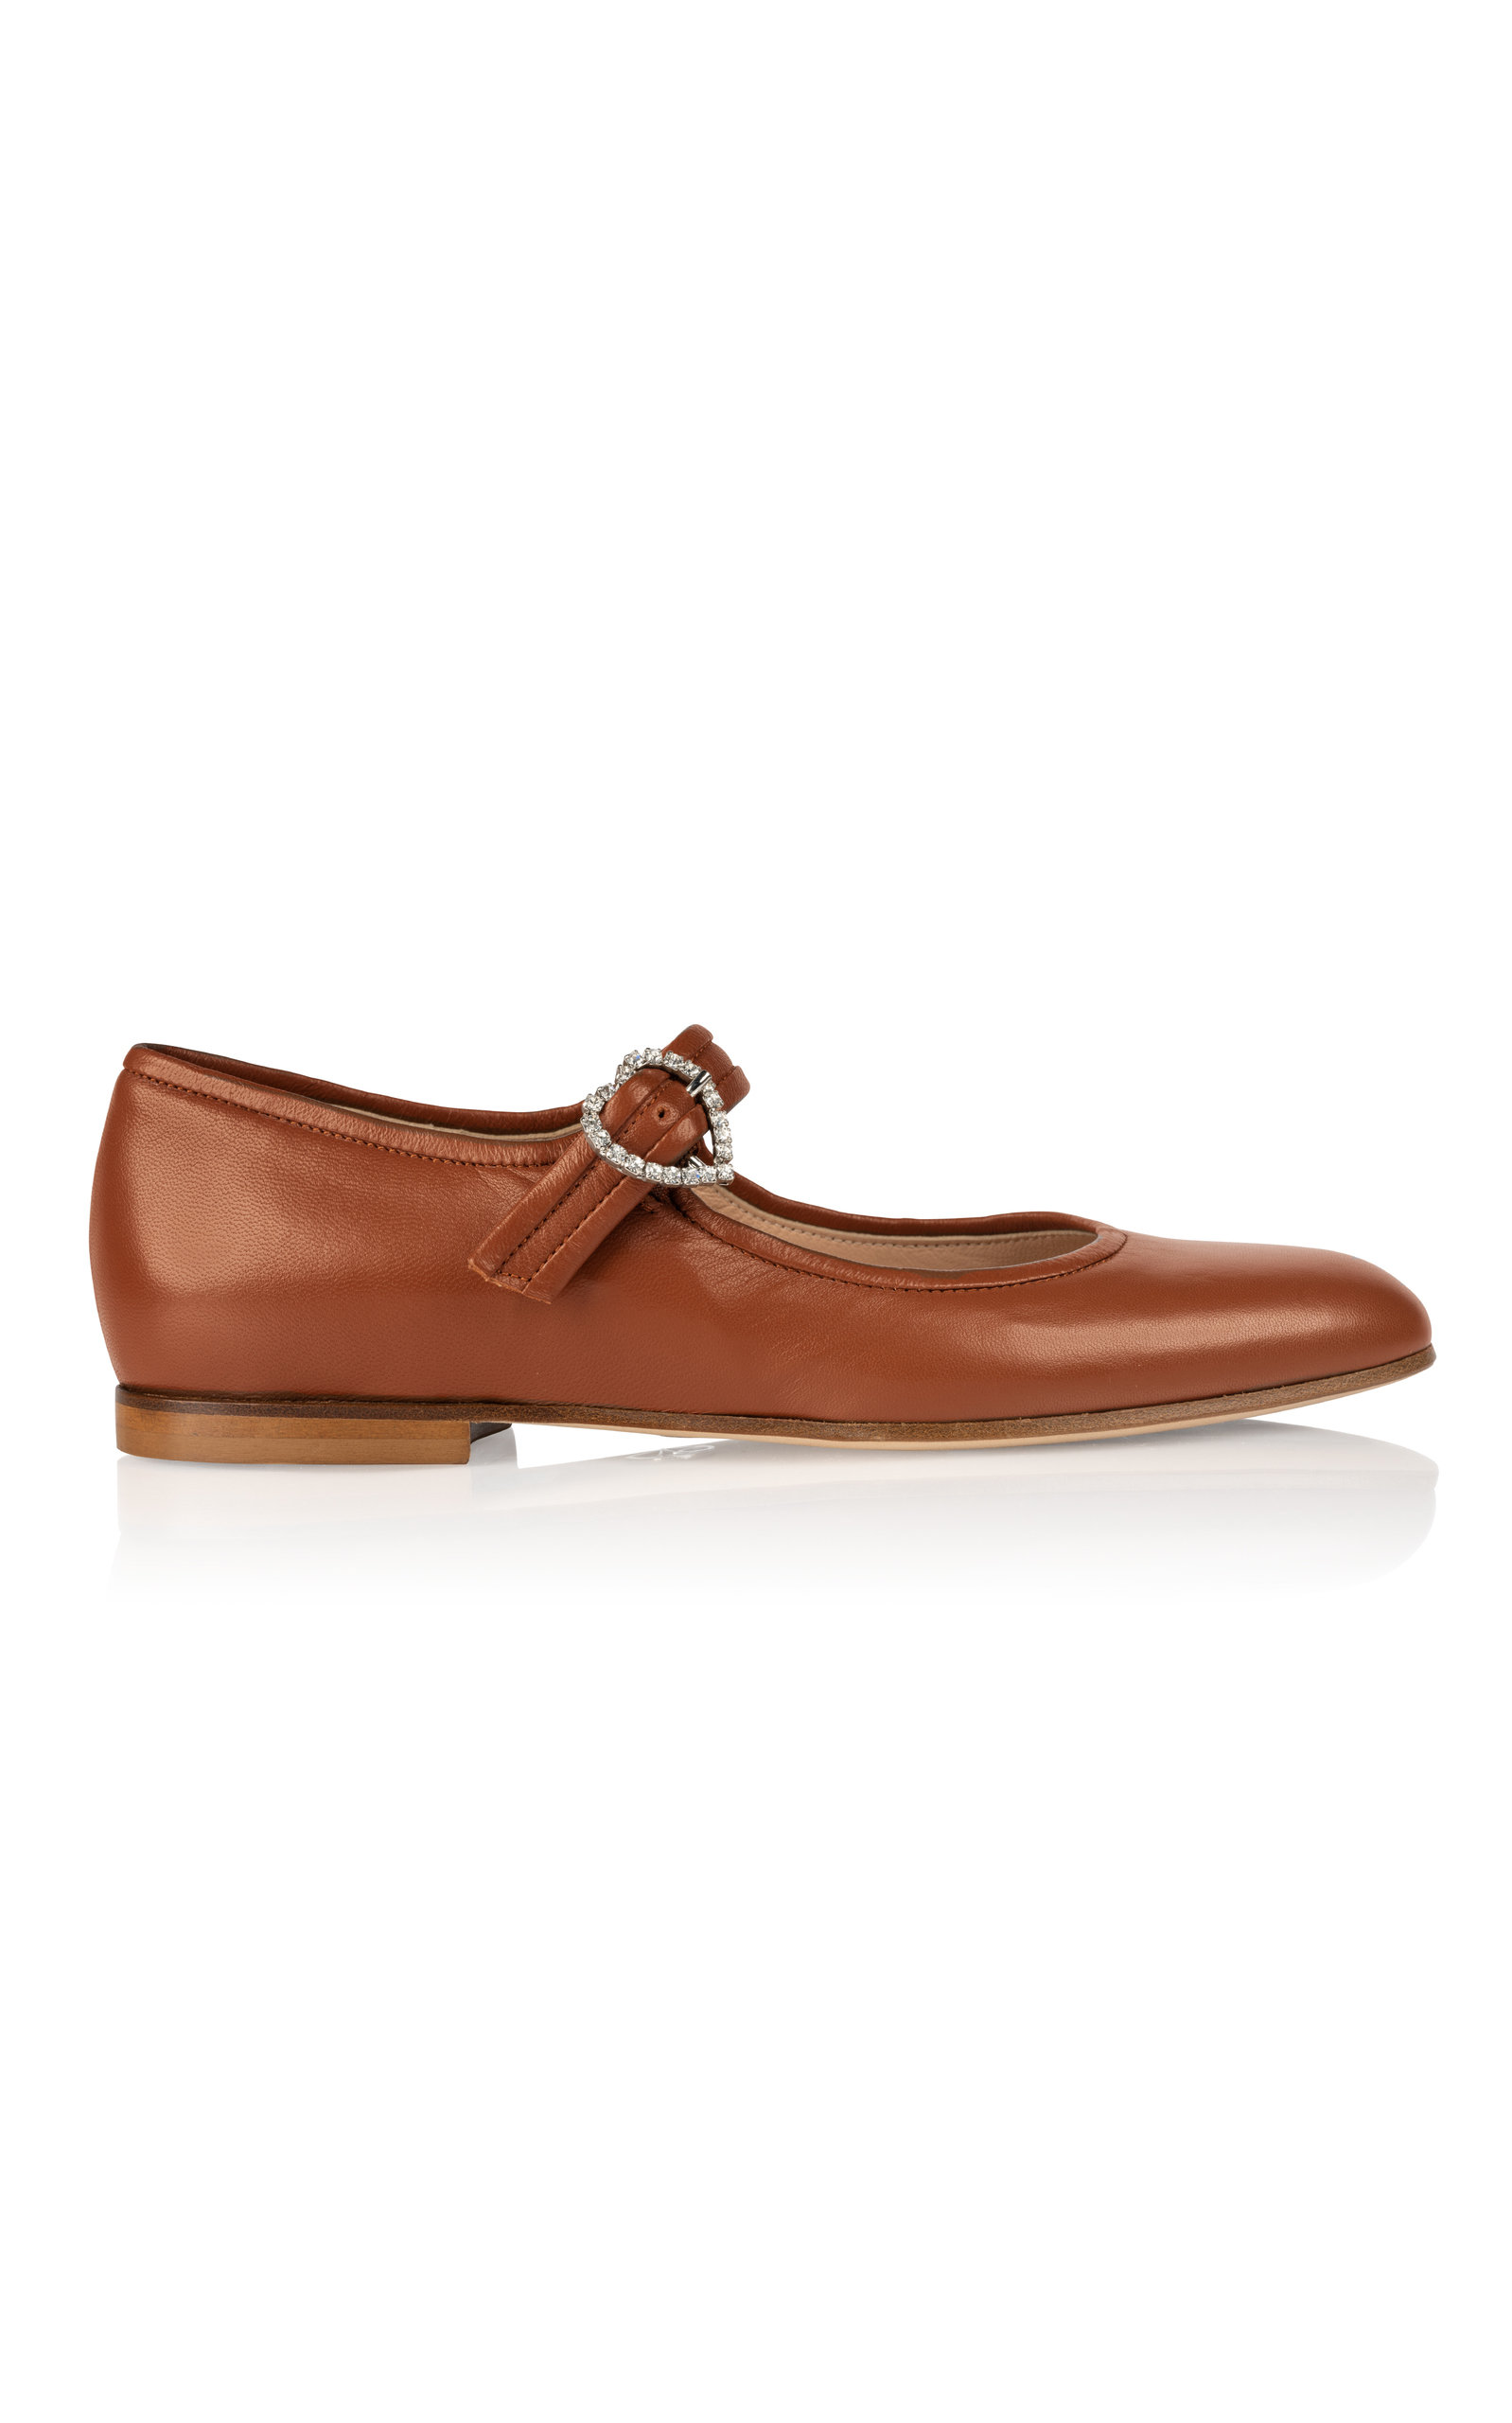 Brother Vellies M'O EXCLUSIVE CICELY PICNIC SHOES